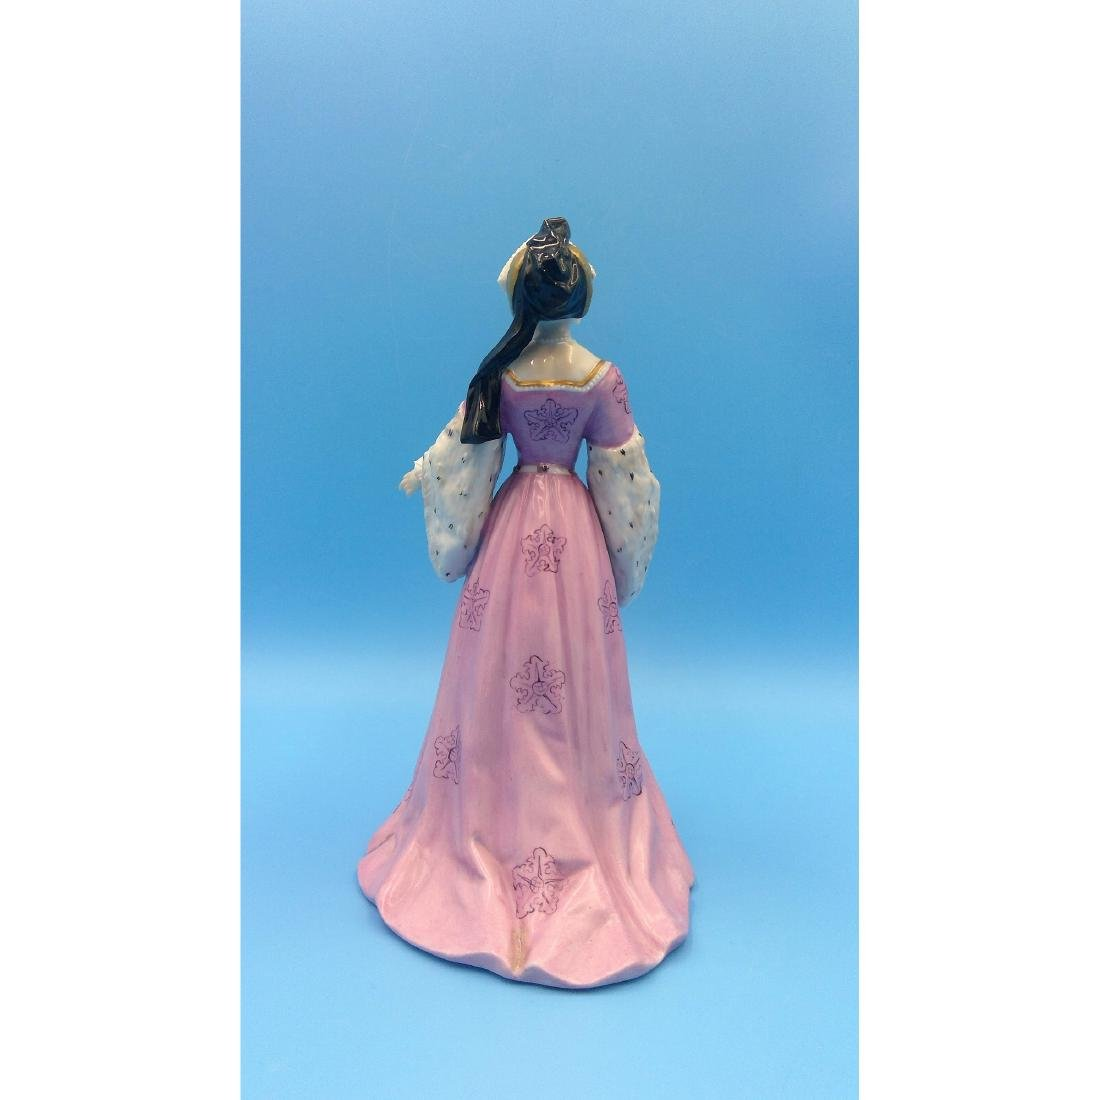 CARL THIEME GERMAN PORCELAIN FIGURINE PRINCESS - 3